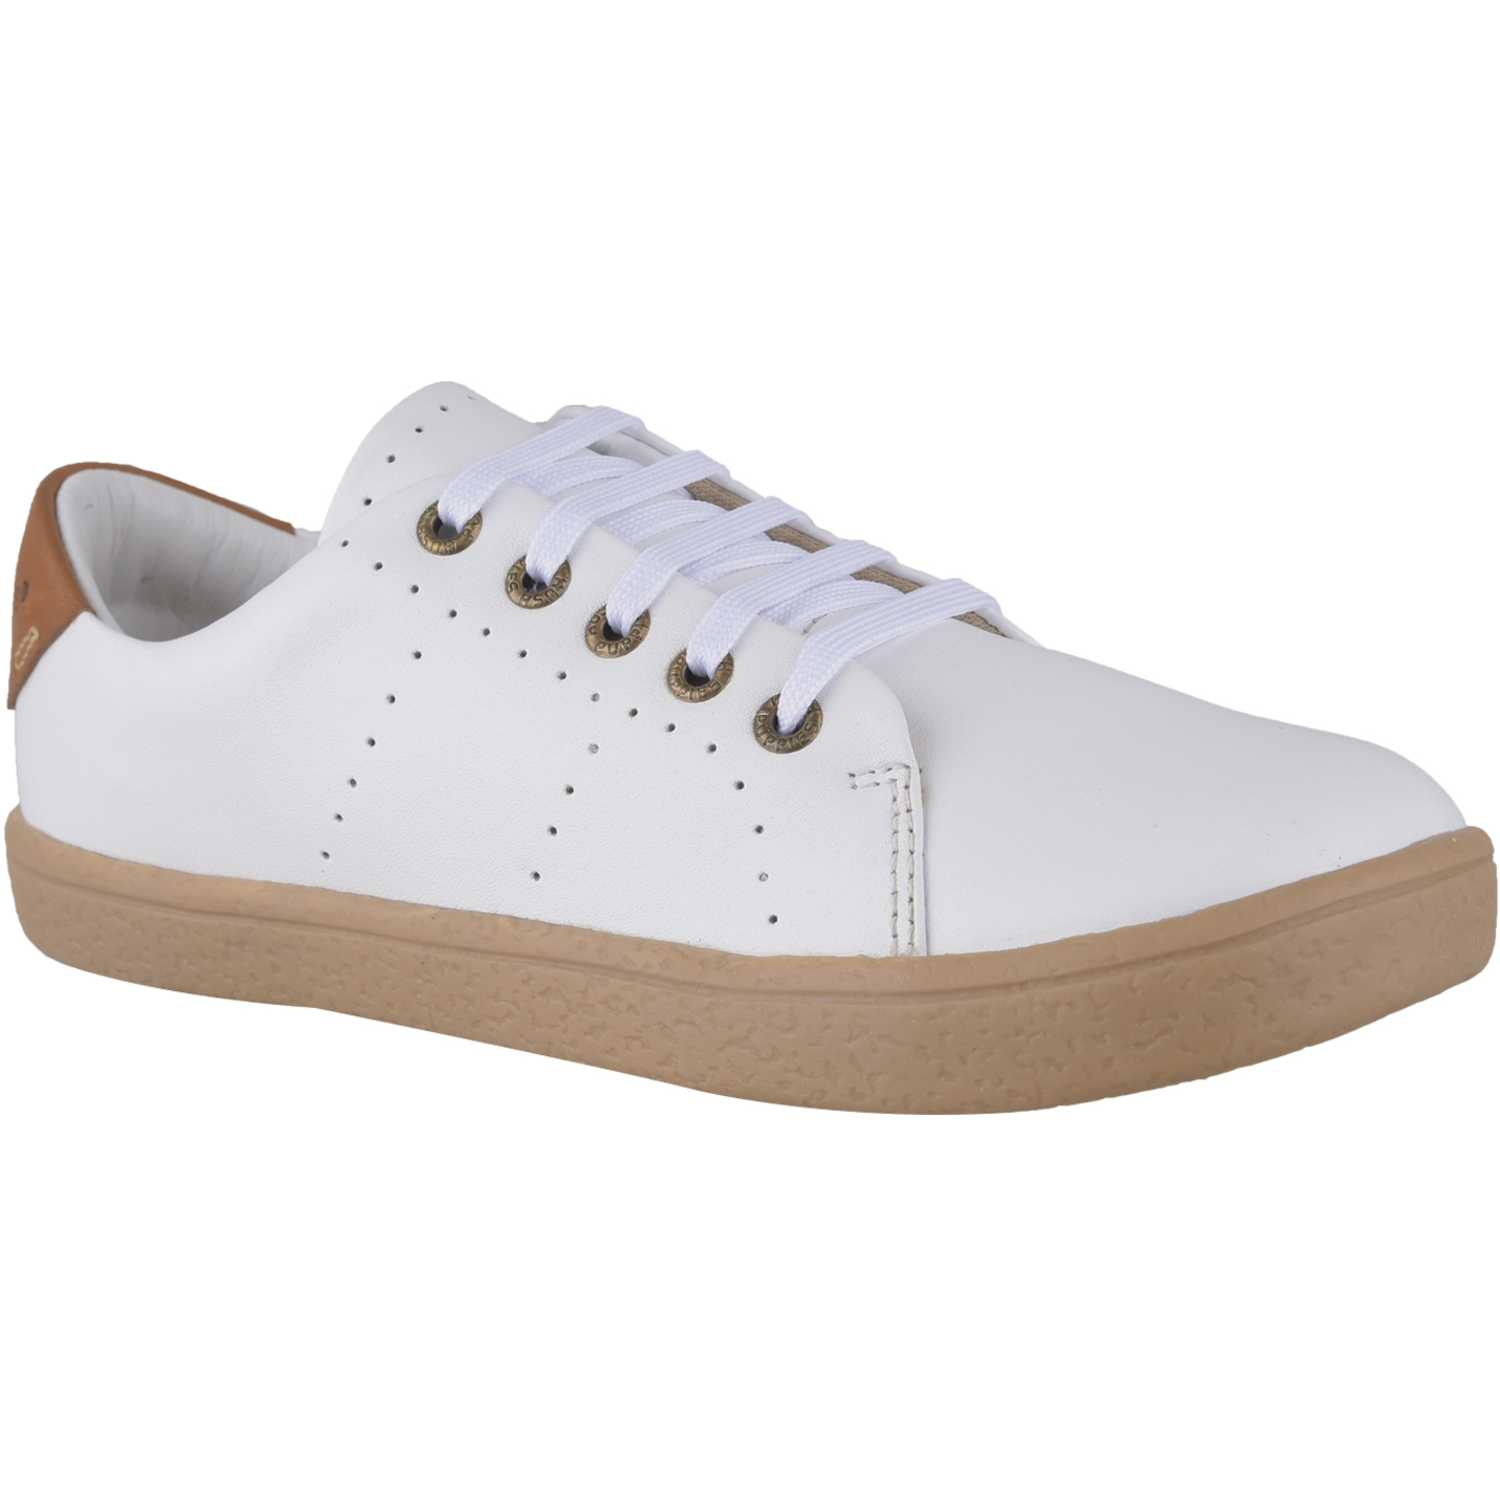 Zapatilla de Niño Hush Puppies Blanco isa